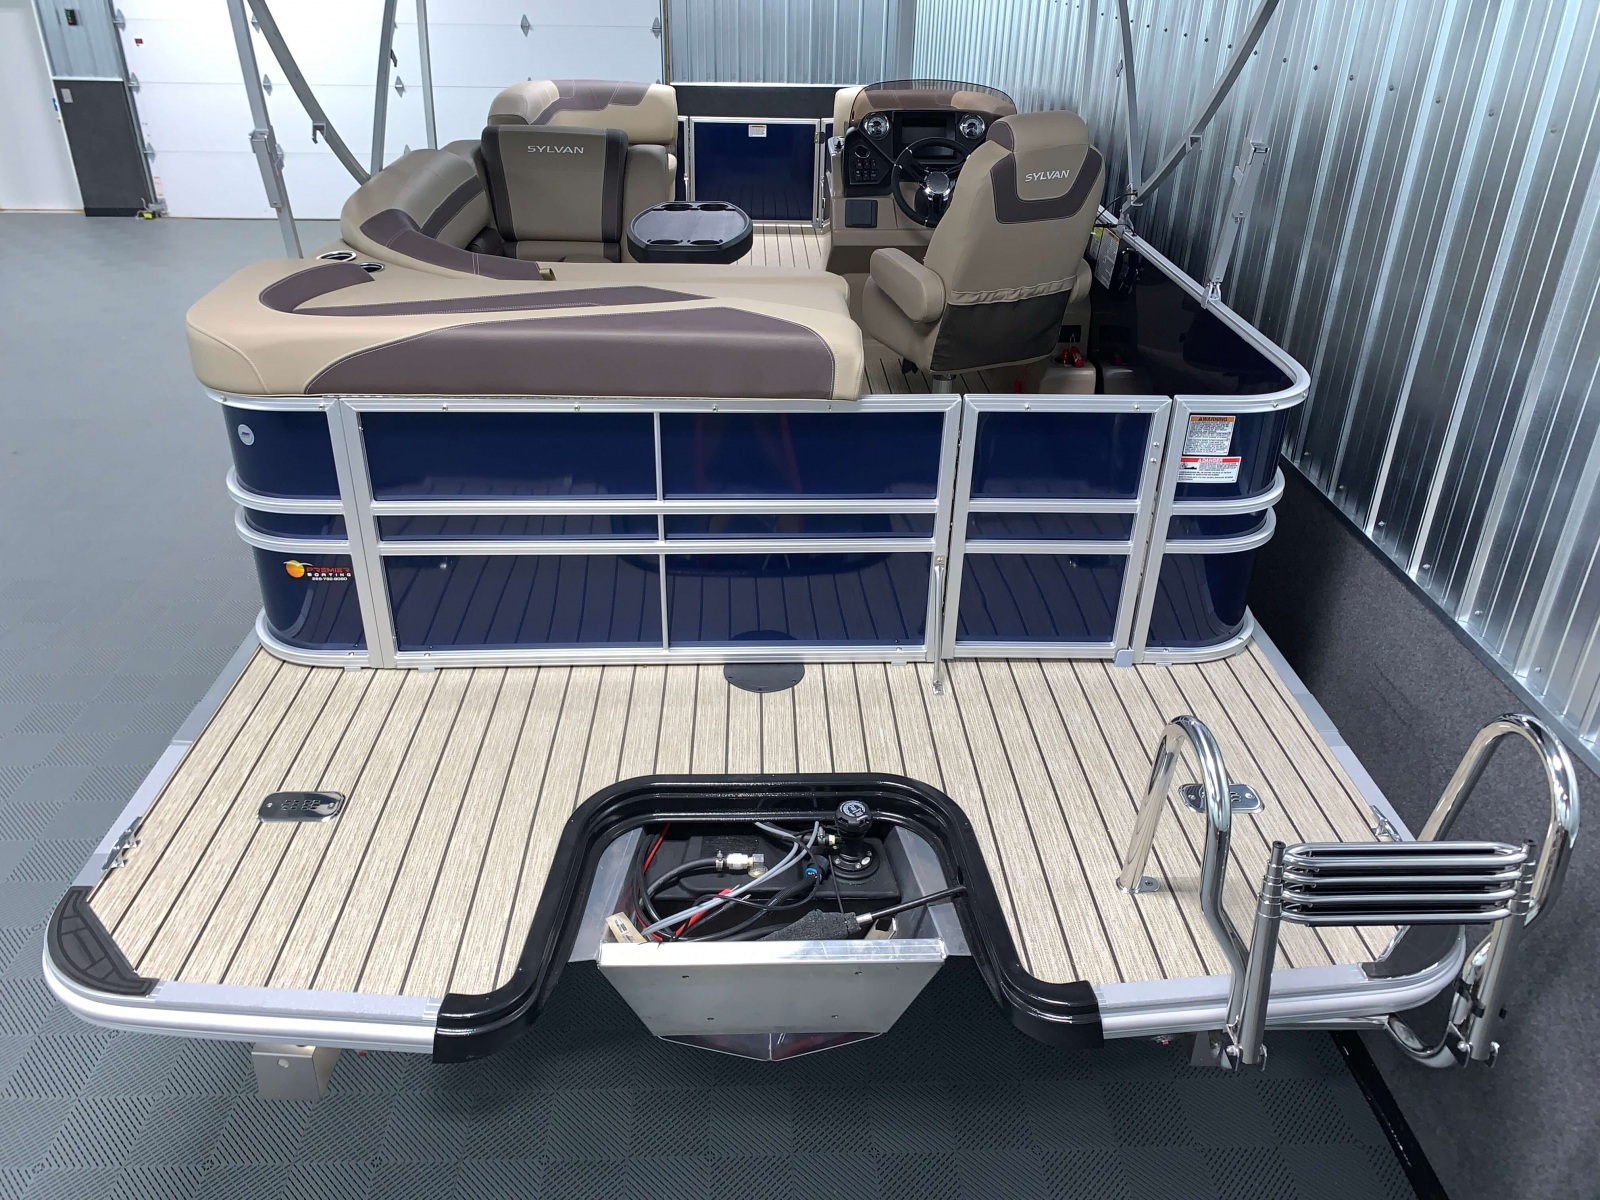 Extended Rear Swim Deck of the 2021 Sylvan L1 Cruise Pontoon Boat